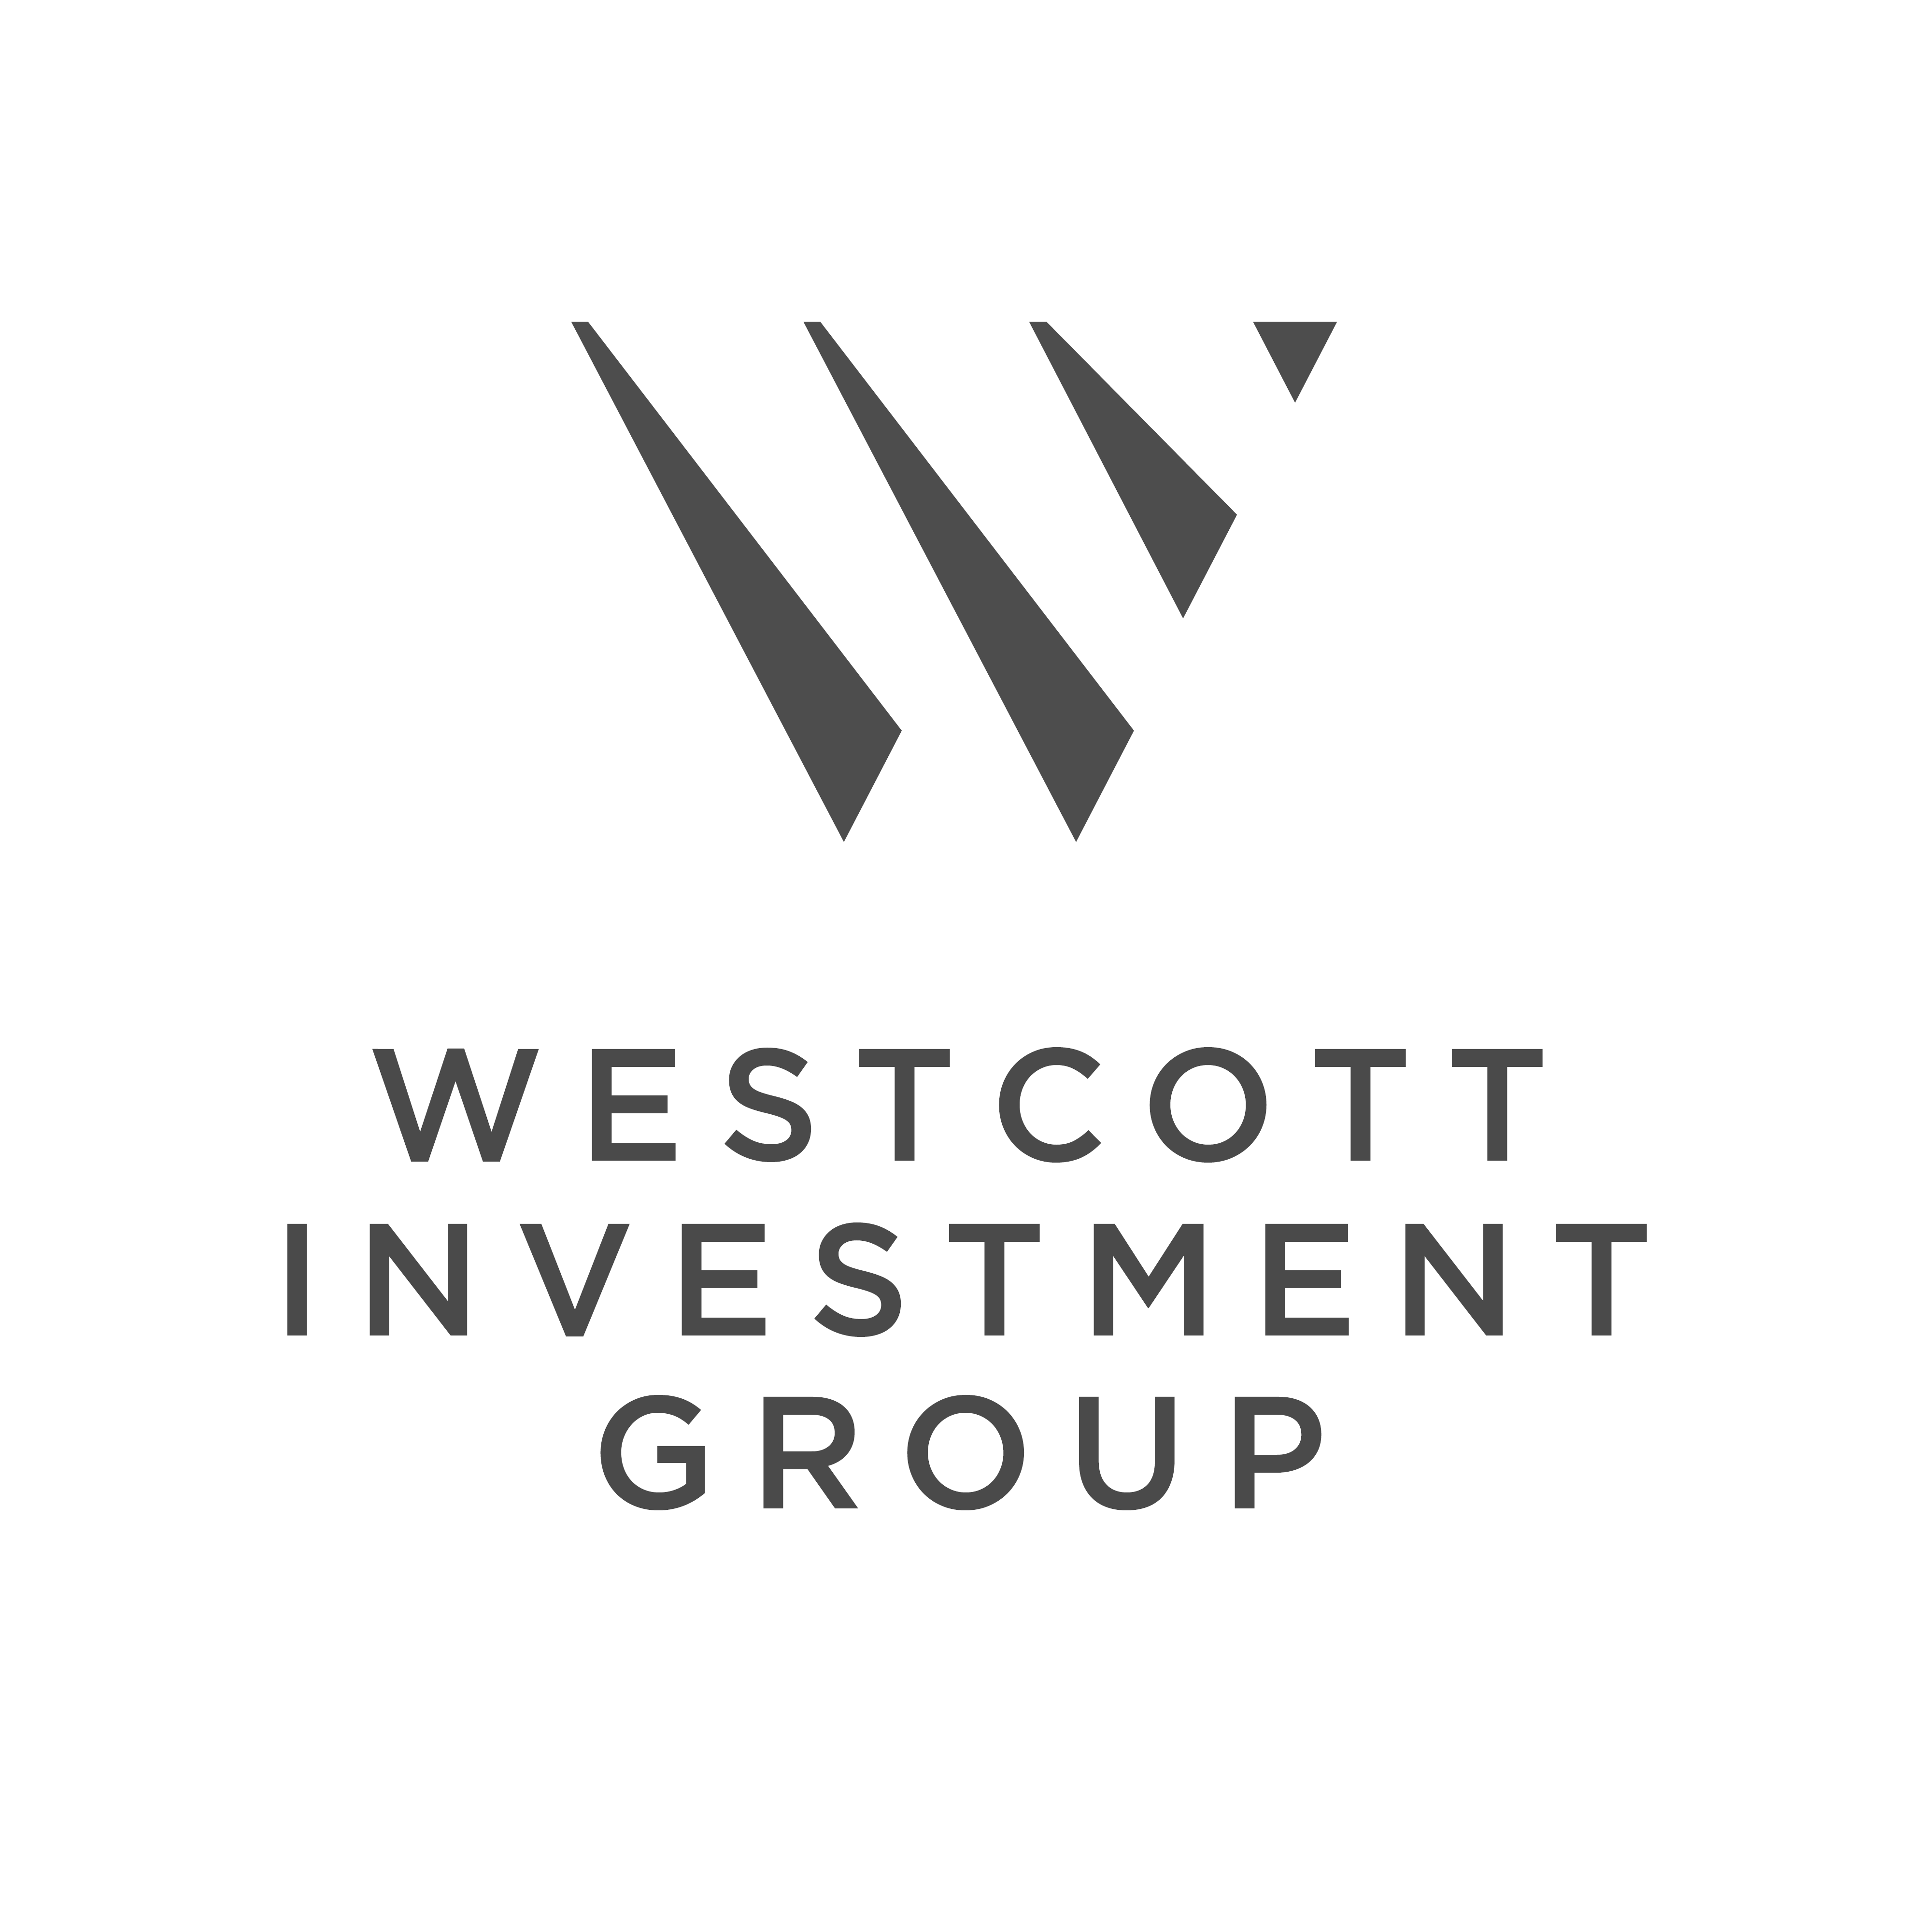 Westcott Investment Group